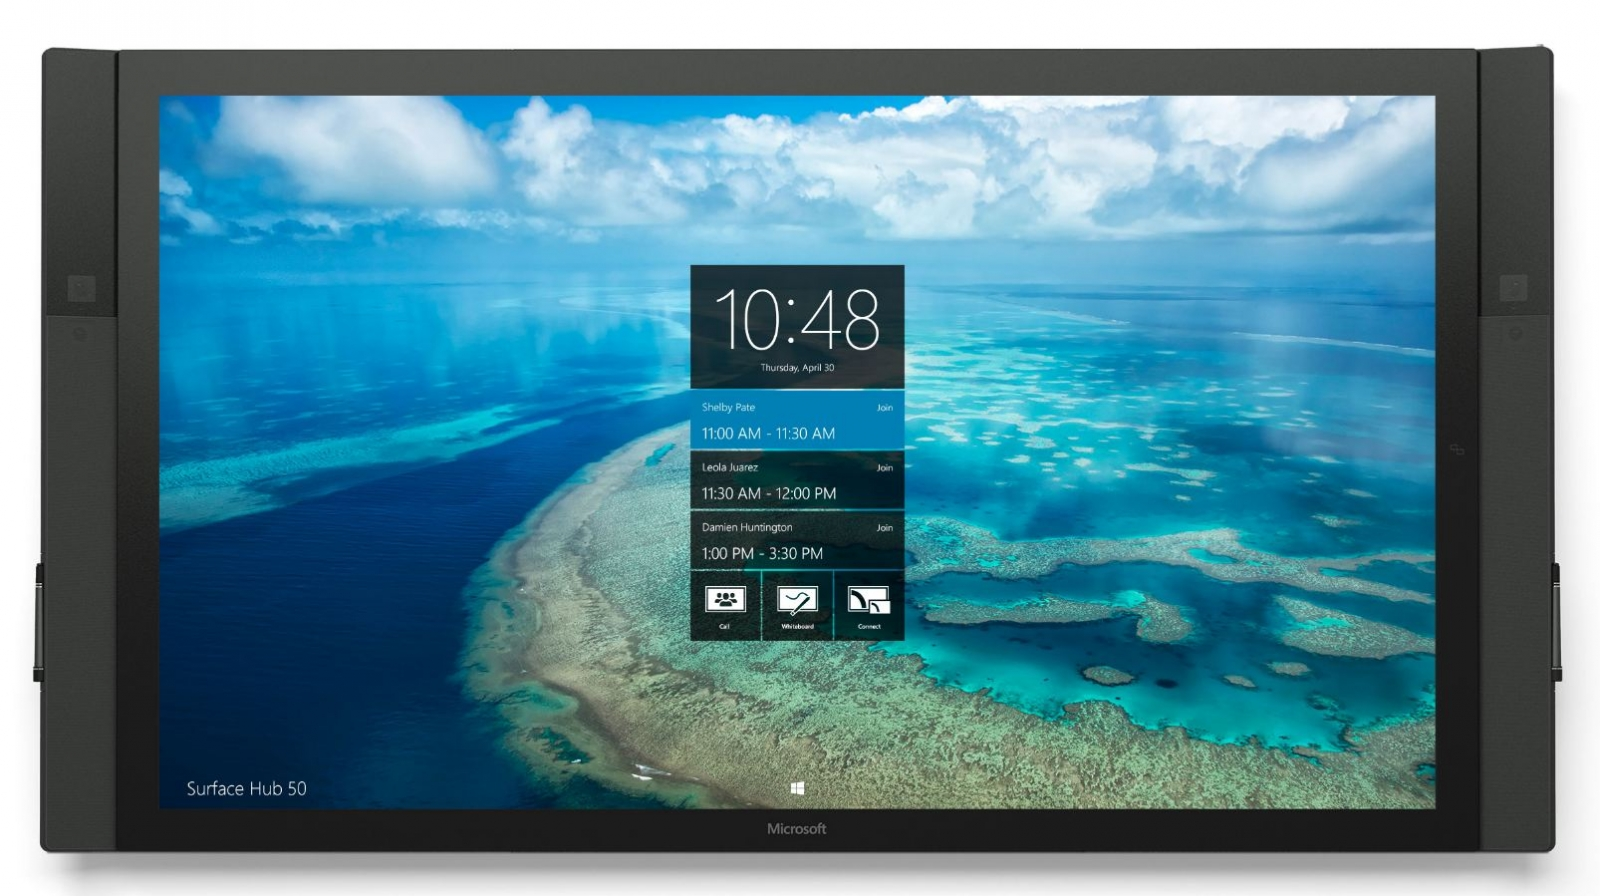 Windows 10 Creators Update comes to SurfaceHub